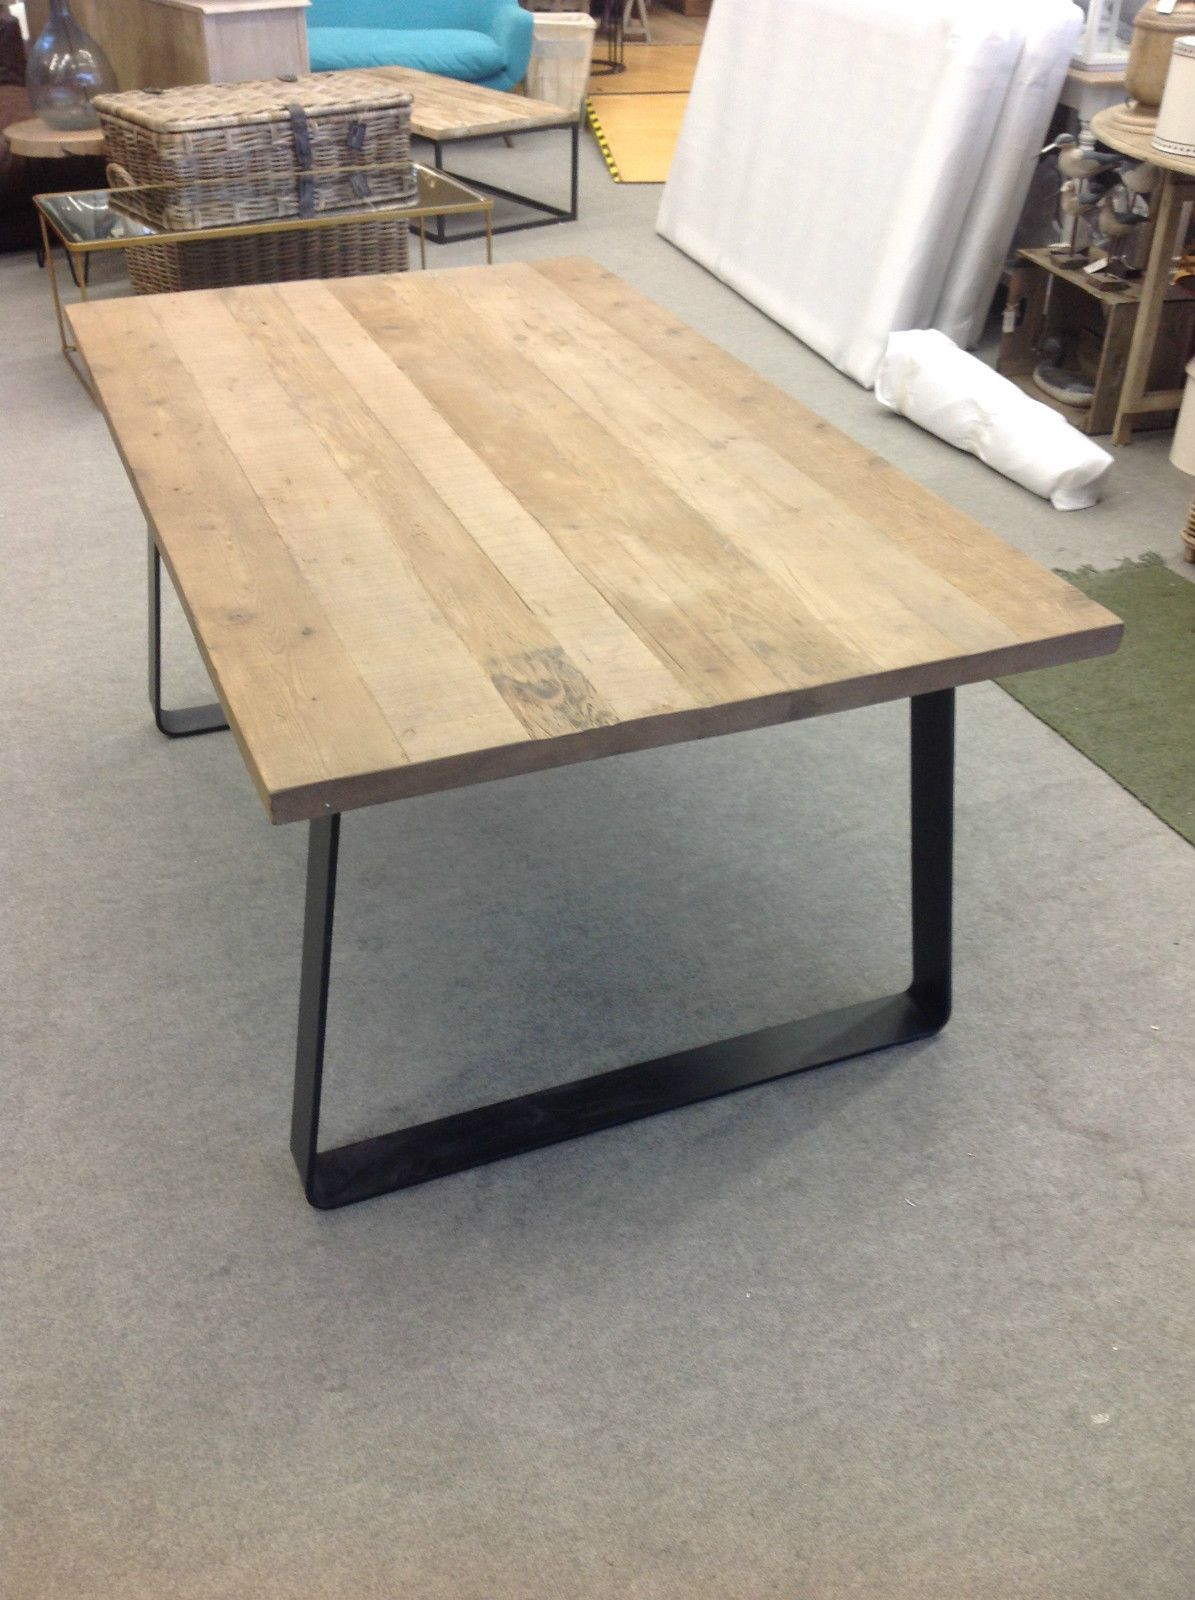 Designer Brand Industrial Style Reclaimed Timber Top Dining Table Medium